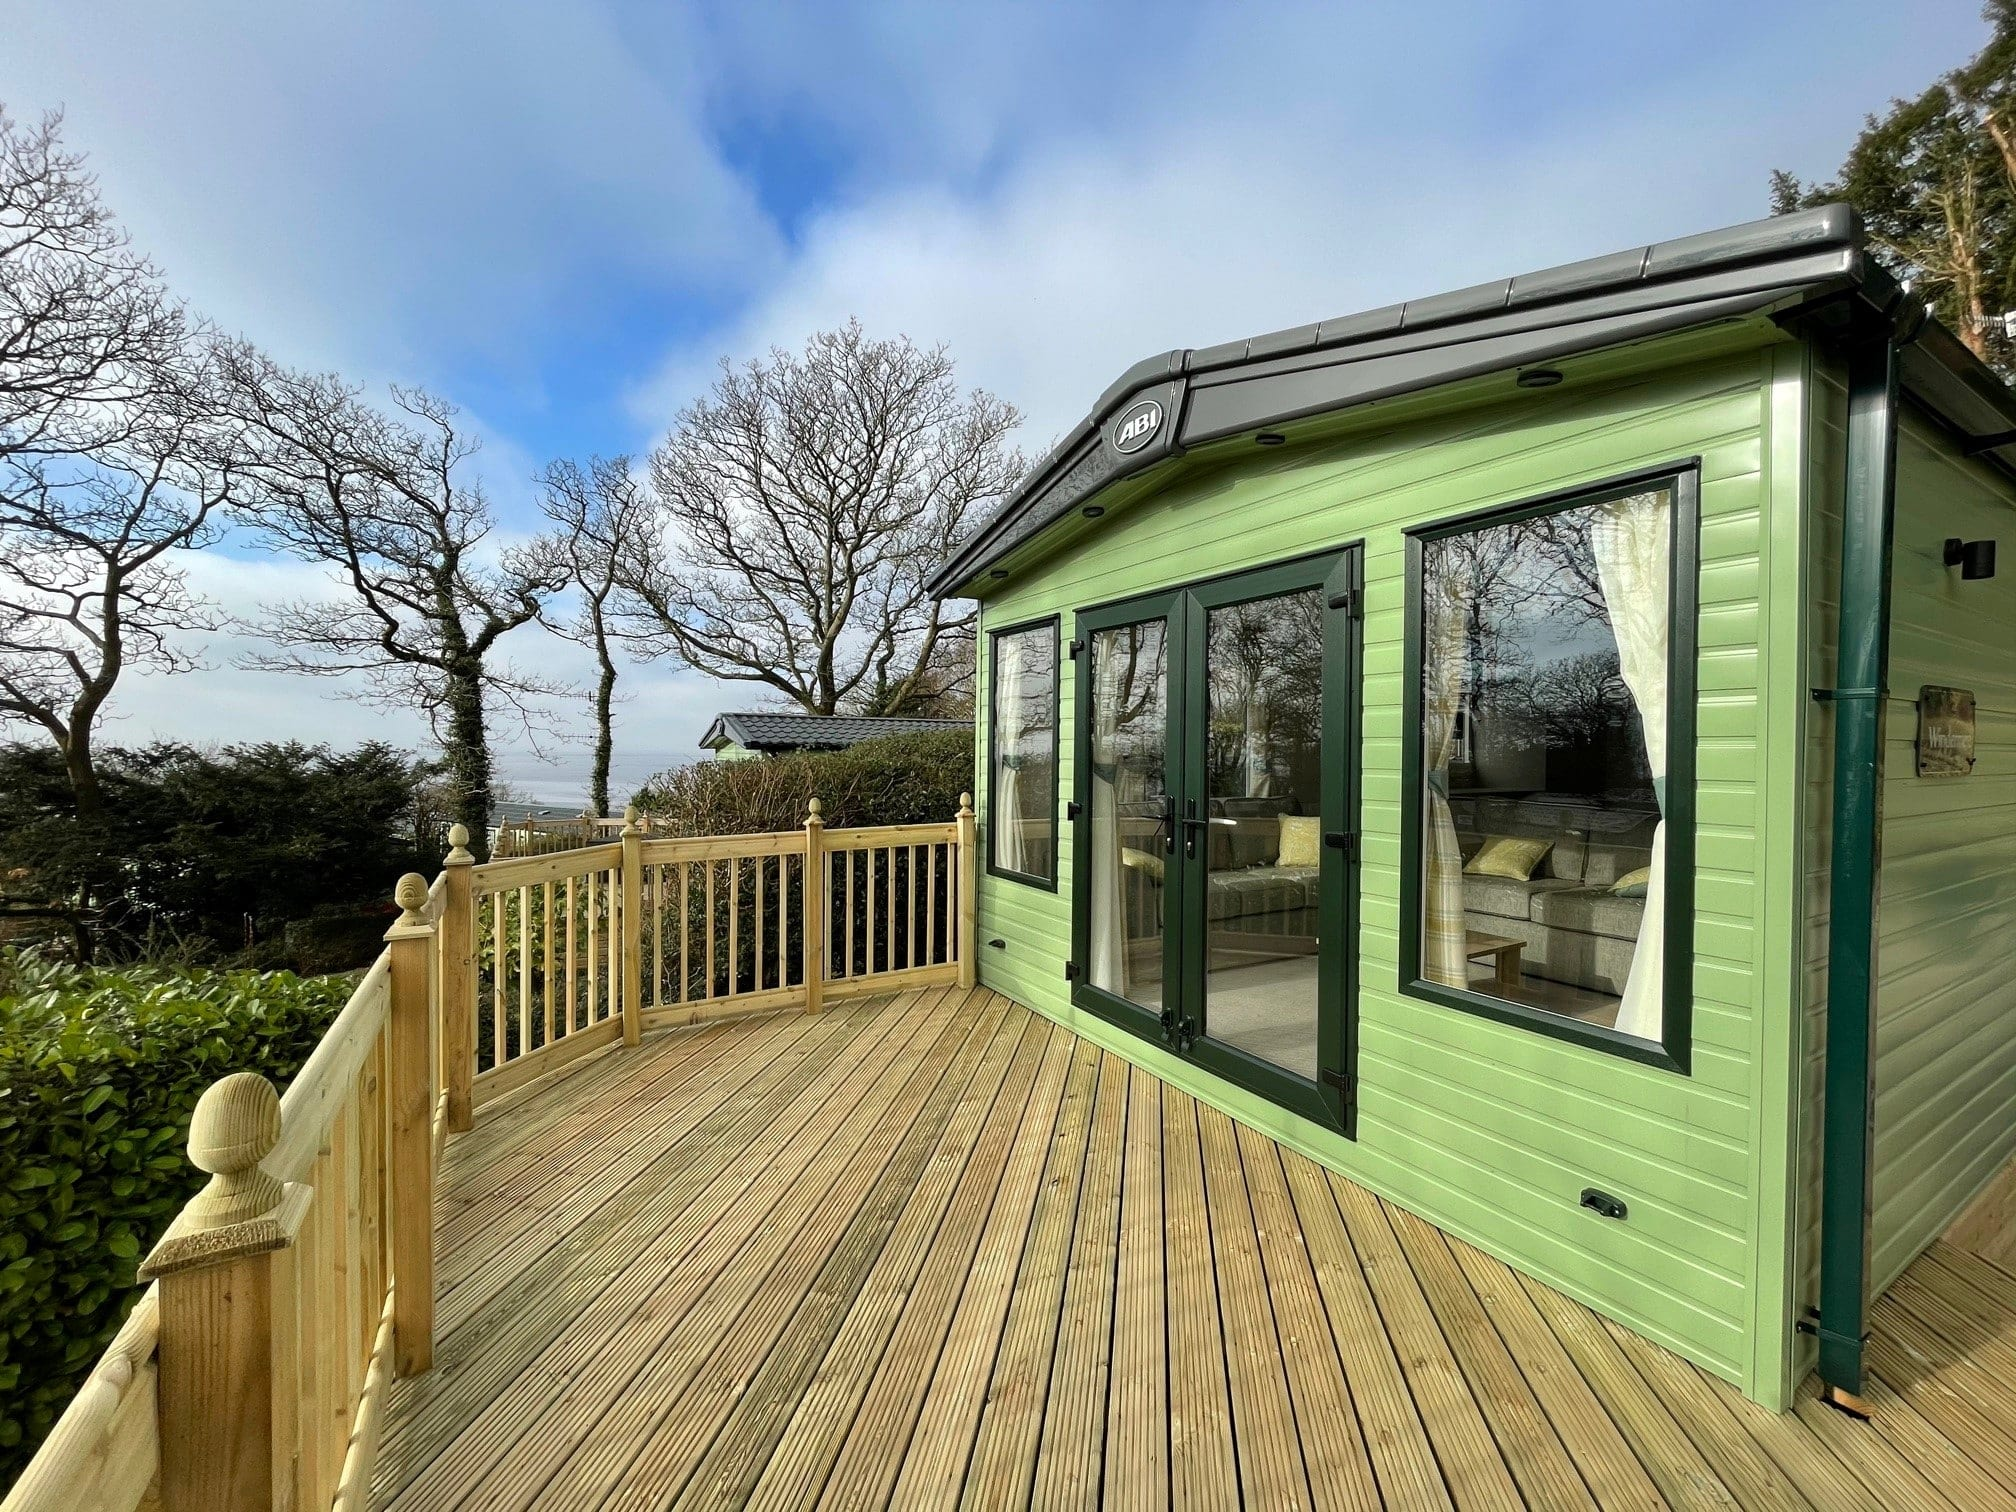 2021 ABI Windermere at Far Arnside Holiday Park - Deck View - Holgates holiday homes for sale